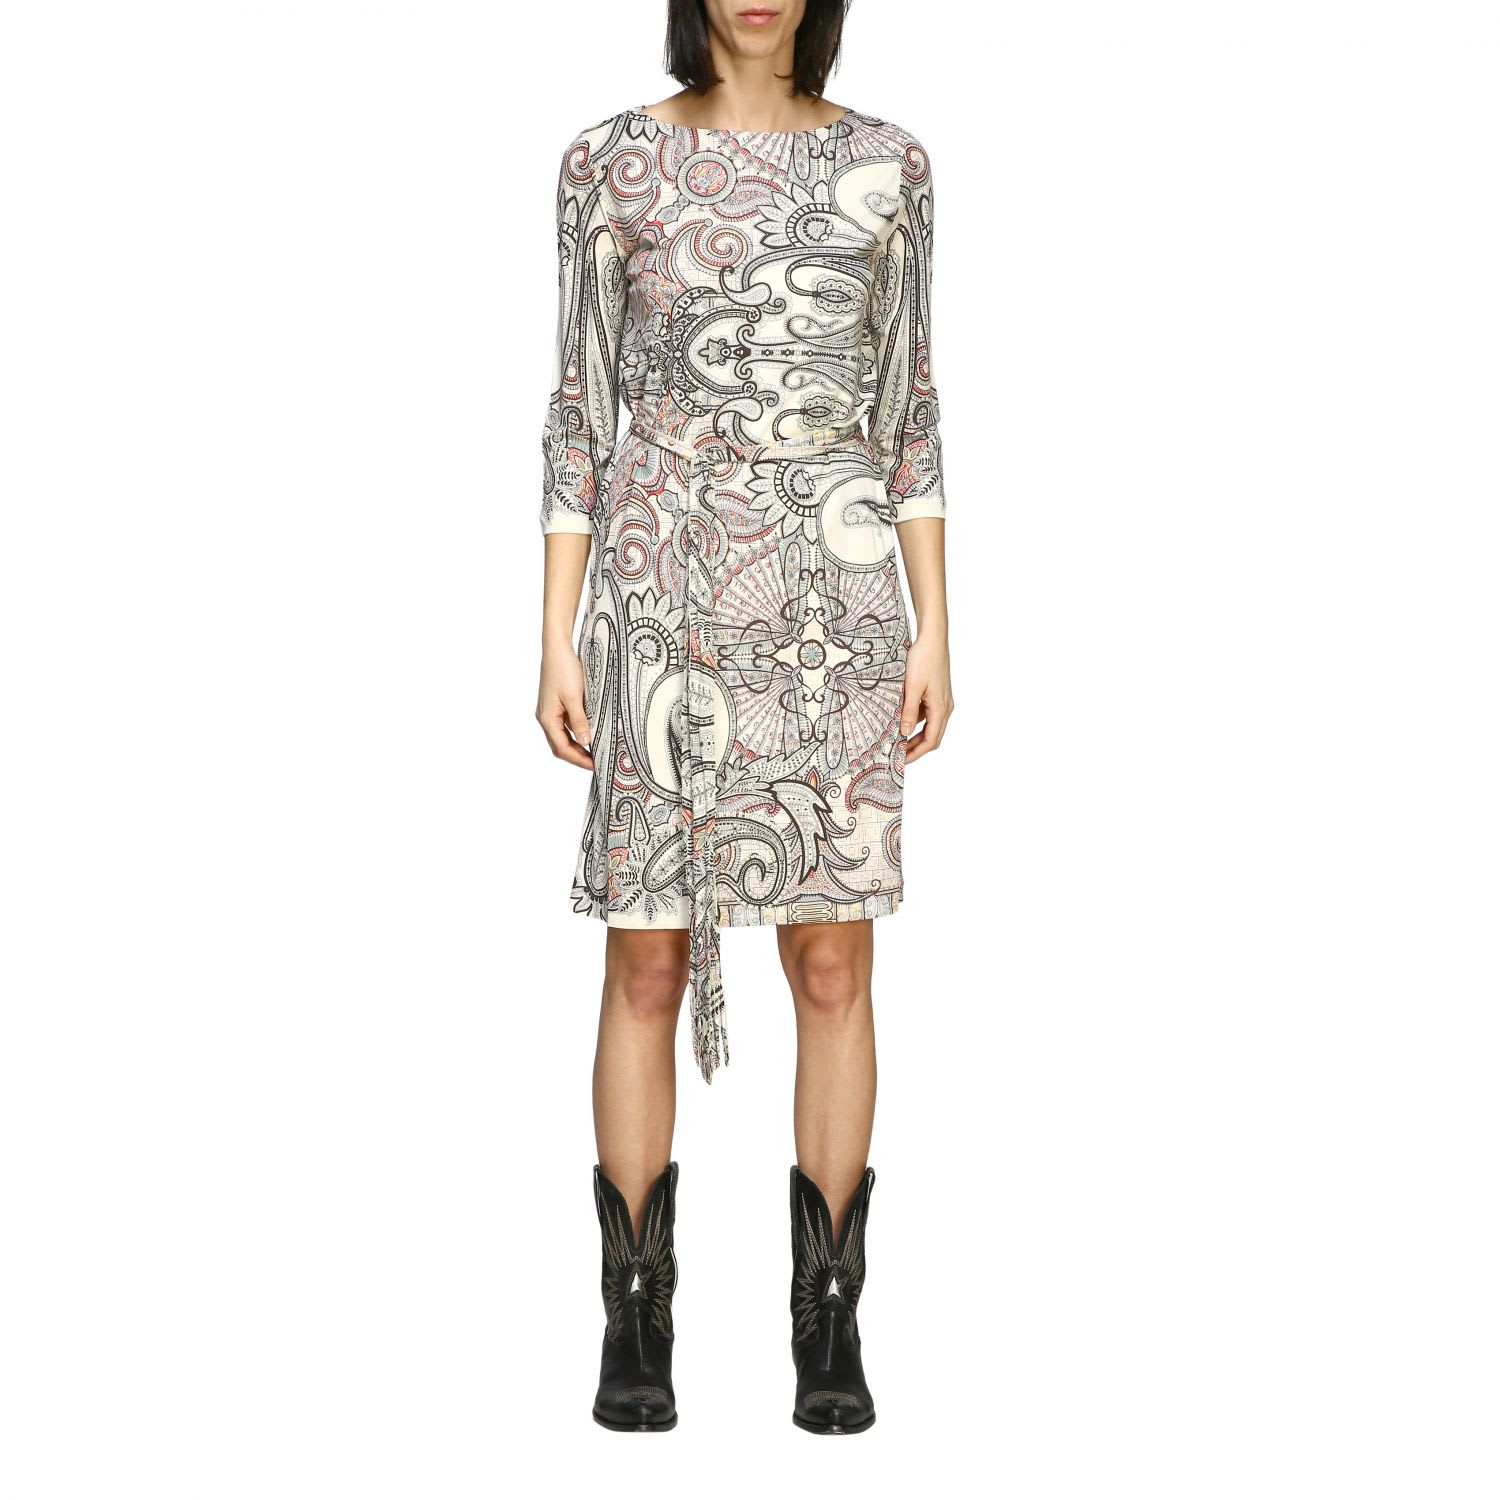 Buy Etro Dress Etro Jersey Dress With Paisley Print And Belt online, shop Etro with free shipping